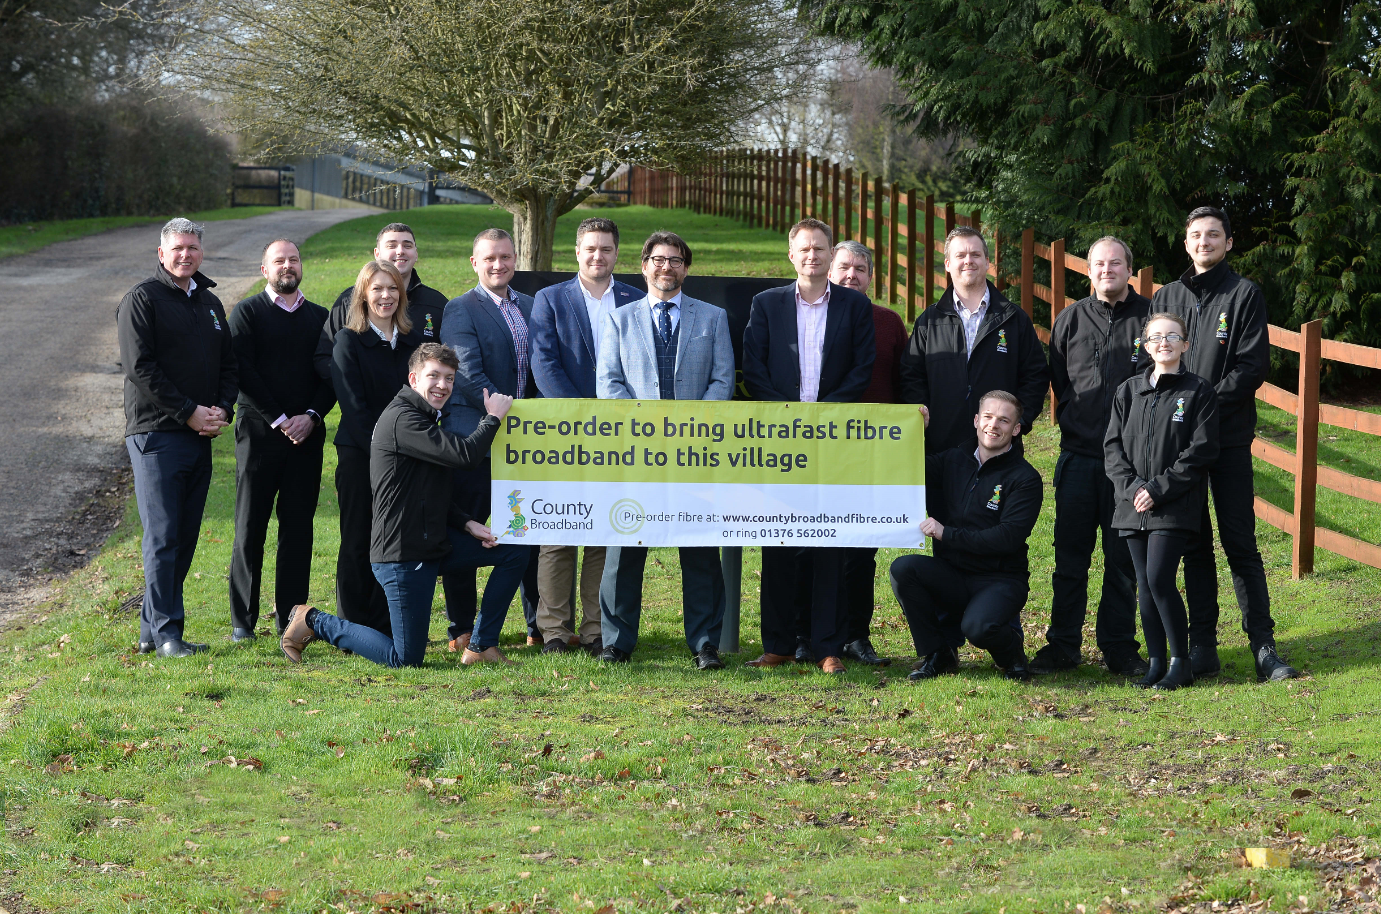 Full-fibre broadband rollout announced in rural South Cambridgeshire villages